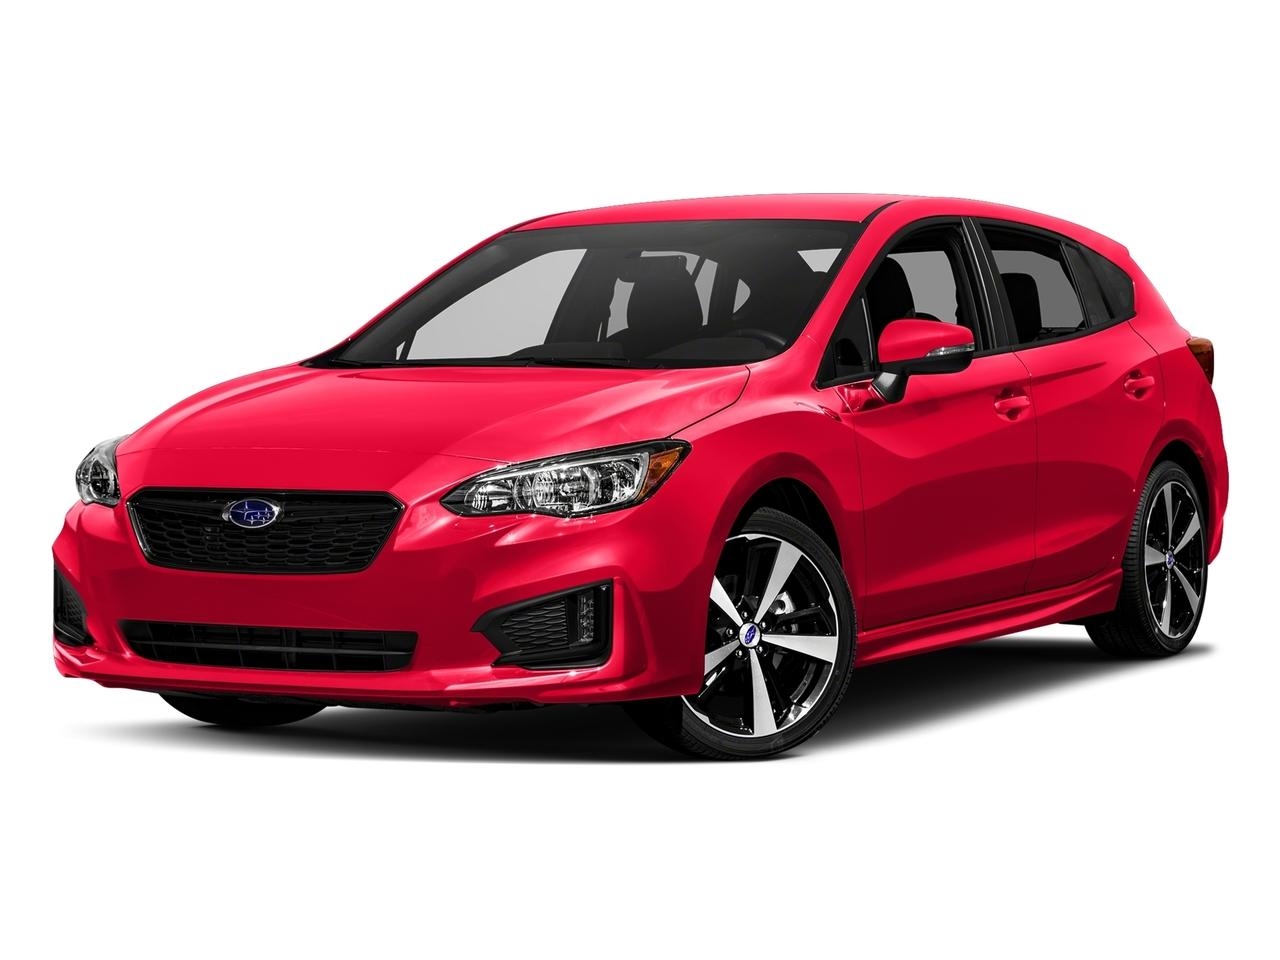 2017 Subaru Impreza Vehicle Photo in Oshkosh, WI 54904